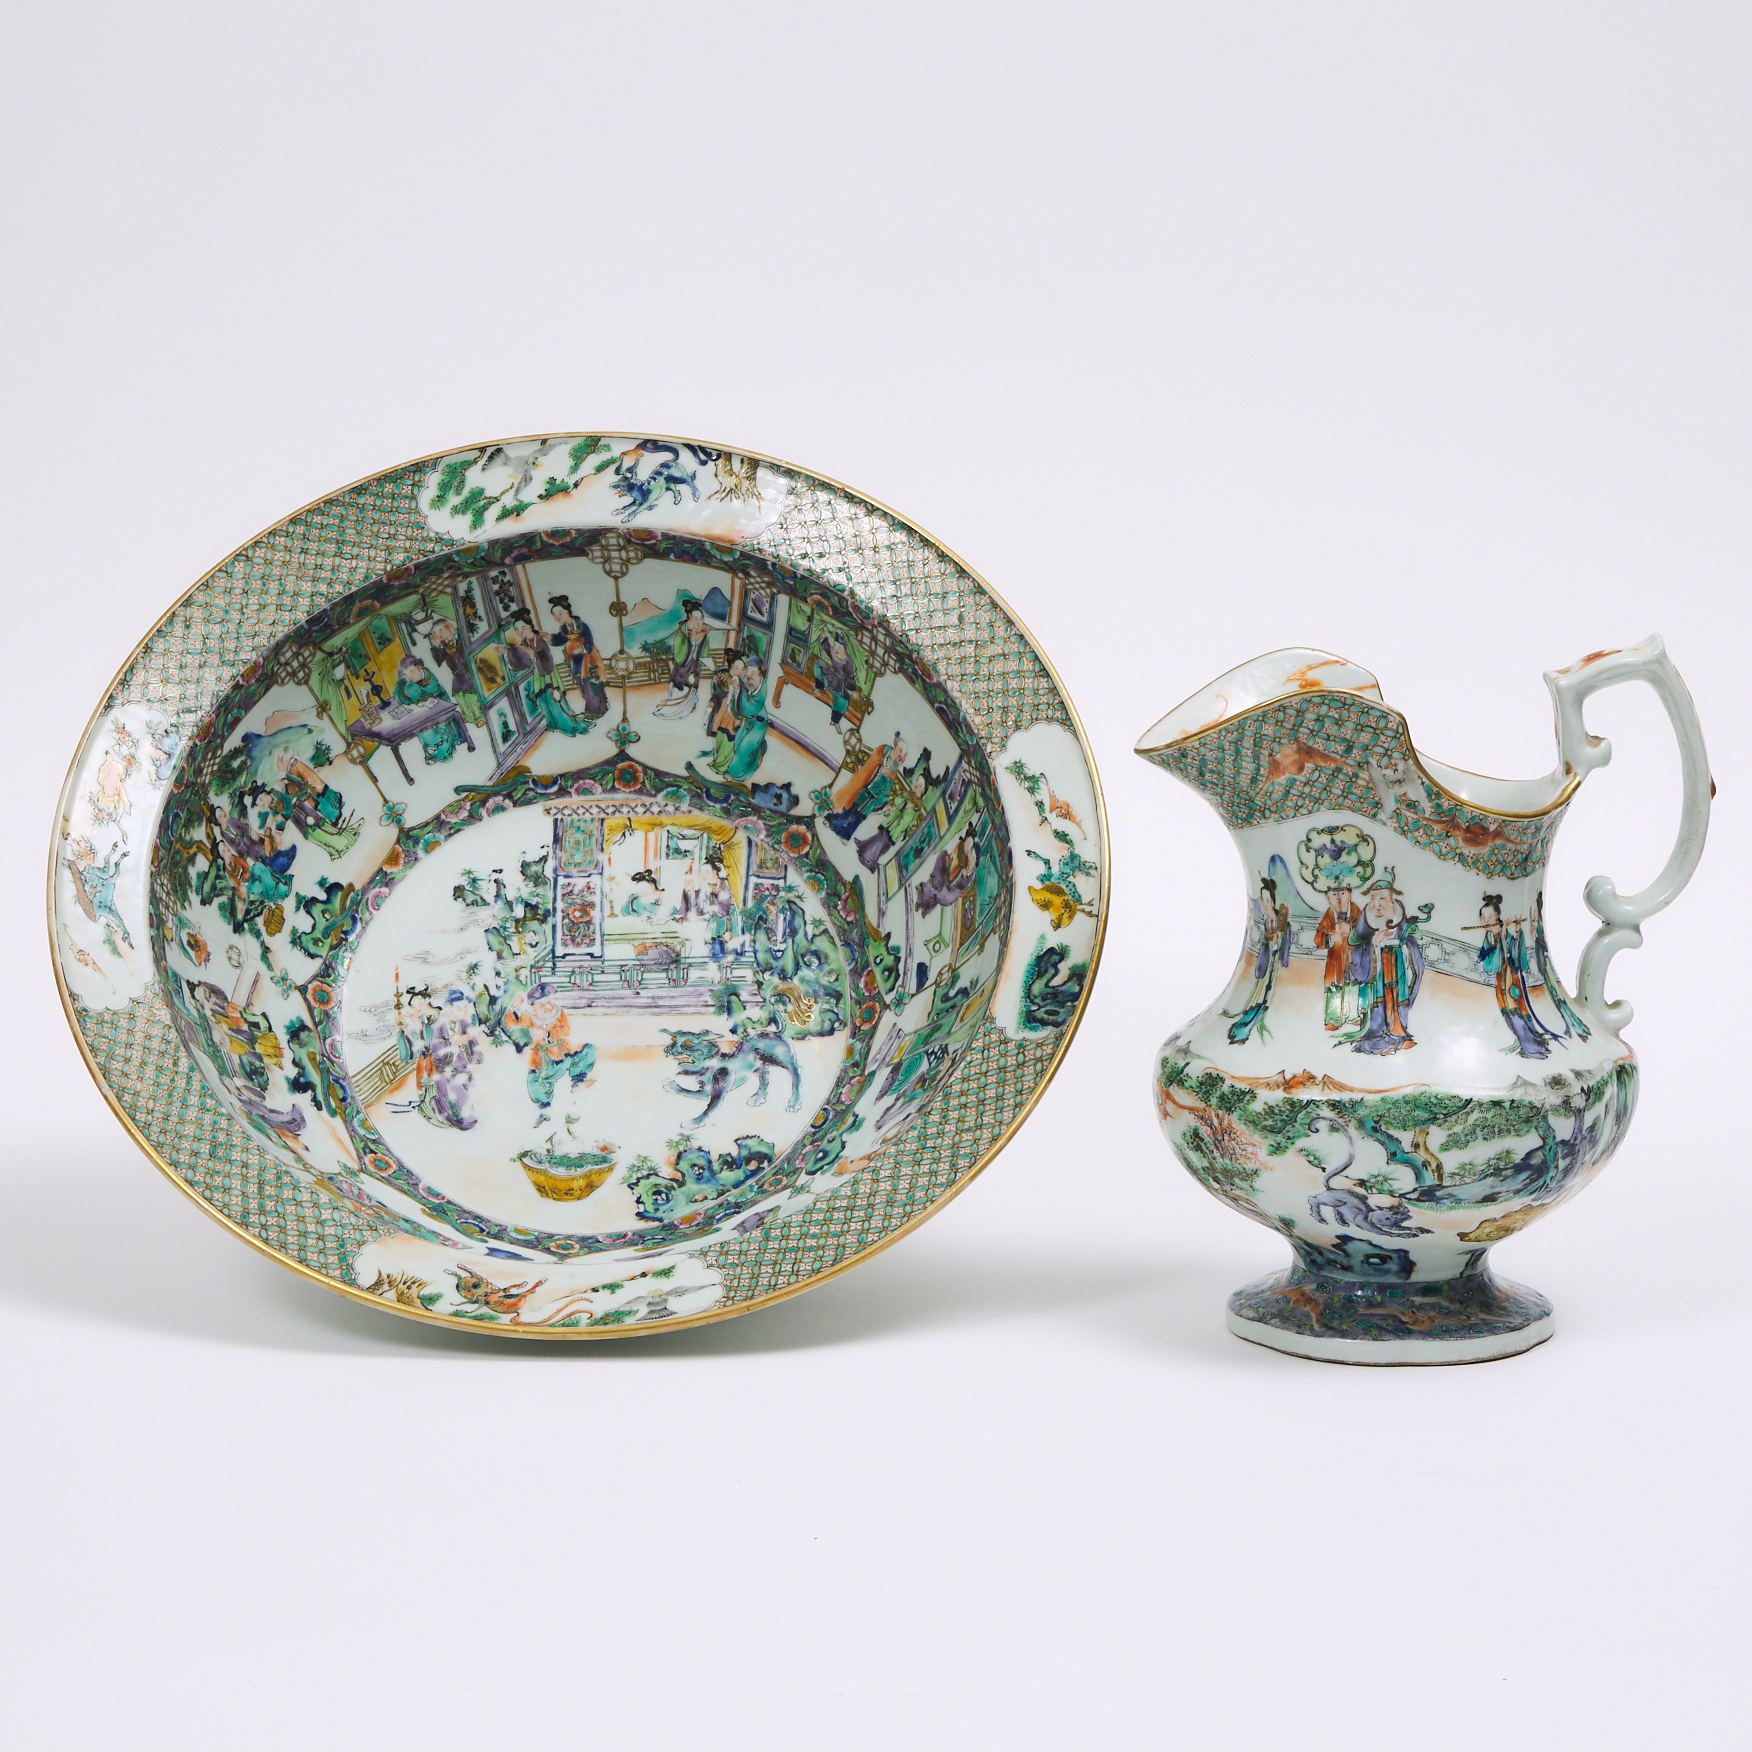 A Famille Verte Pitcher and Basin, 19th Century